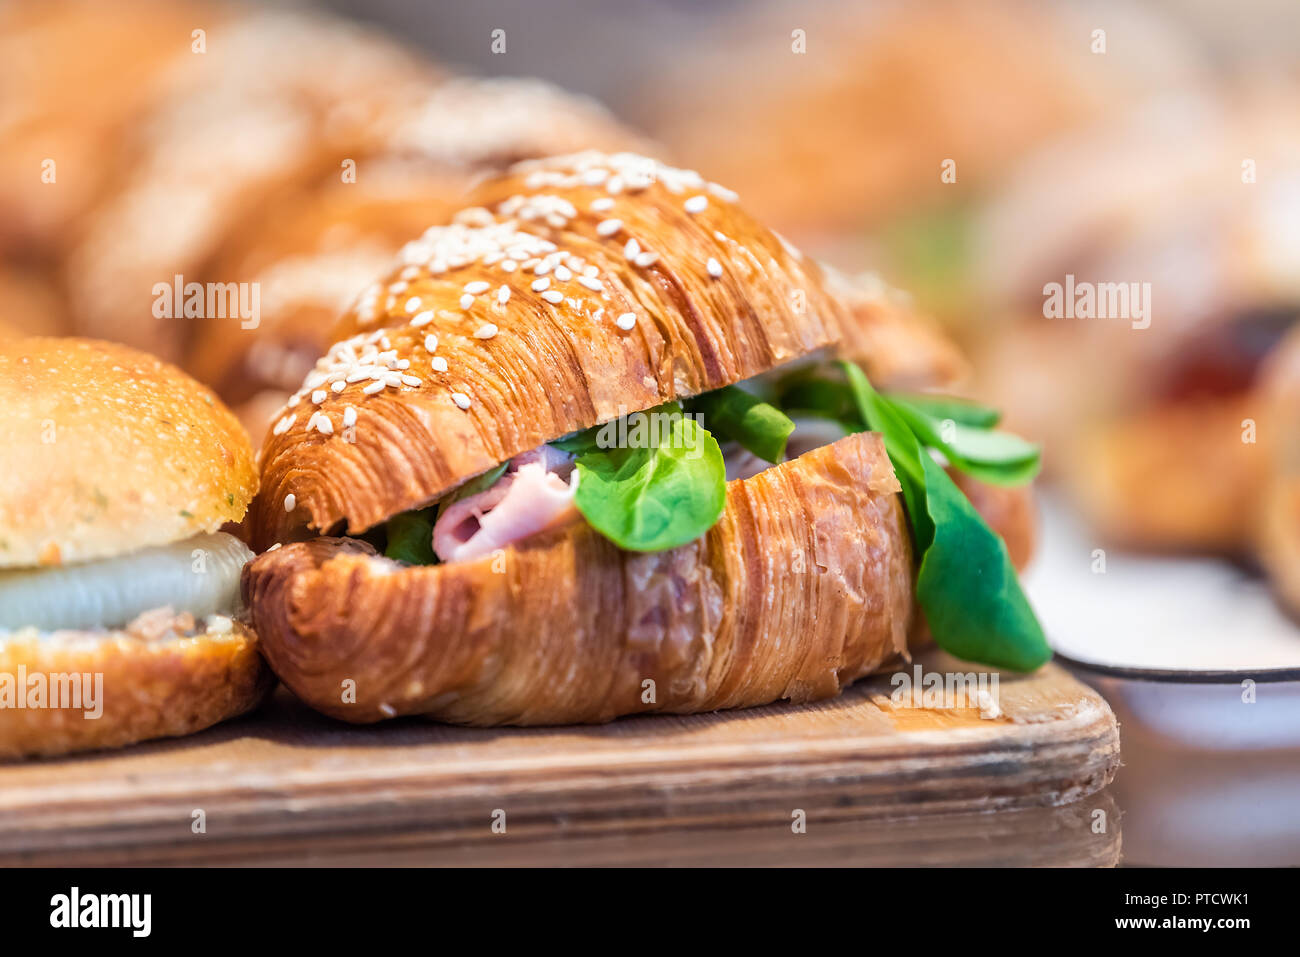 Closeup of savory breakfast croissant sandwich golden dessert in bakery, shop, cafe, store display tray with ham, arugula greens - Stock Image